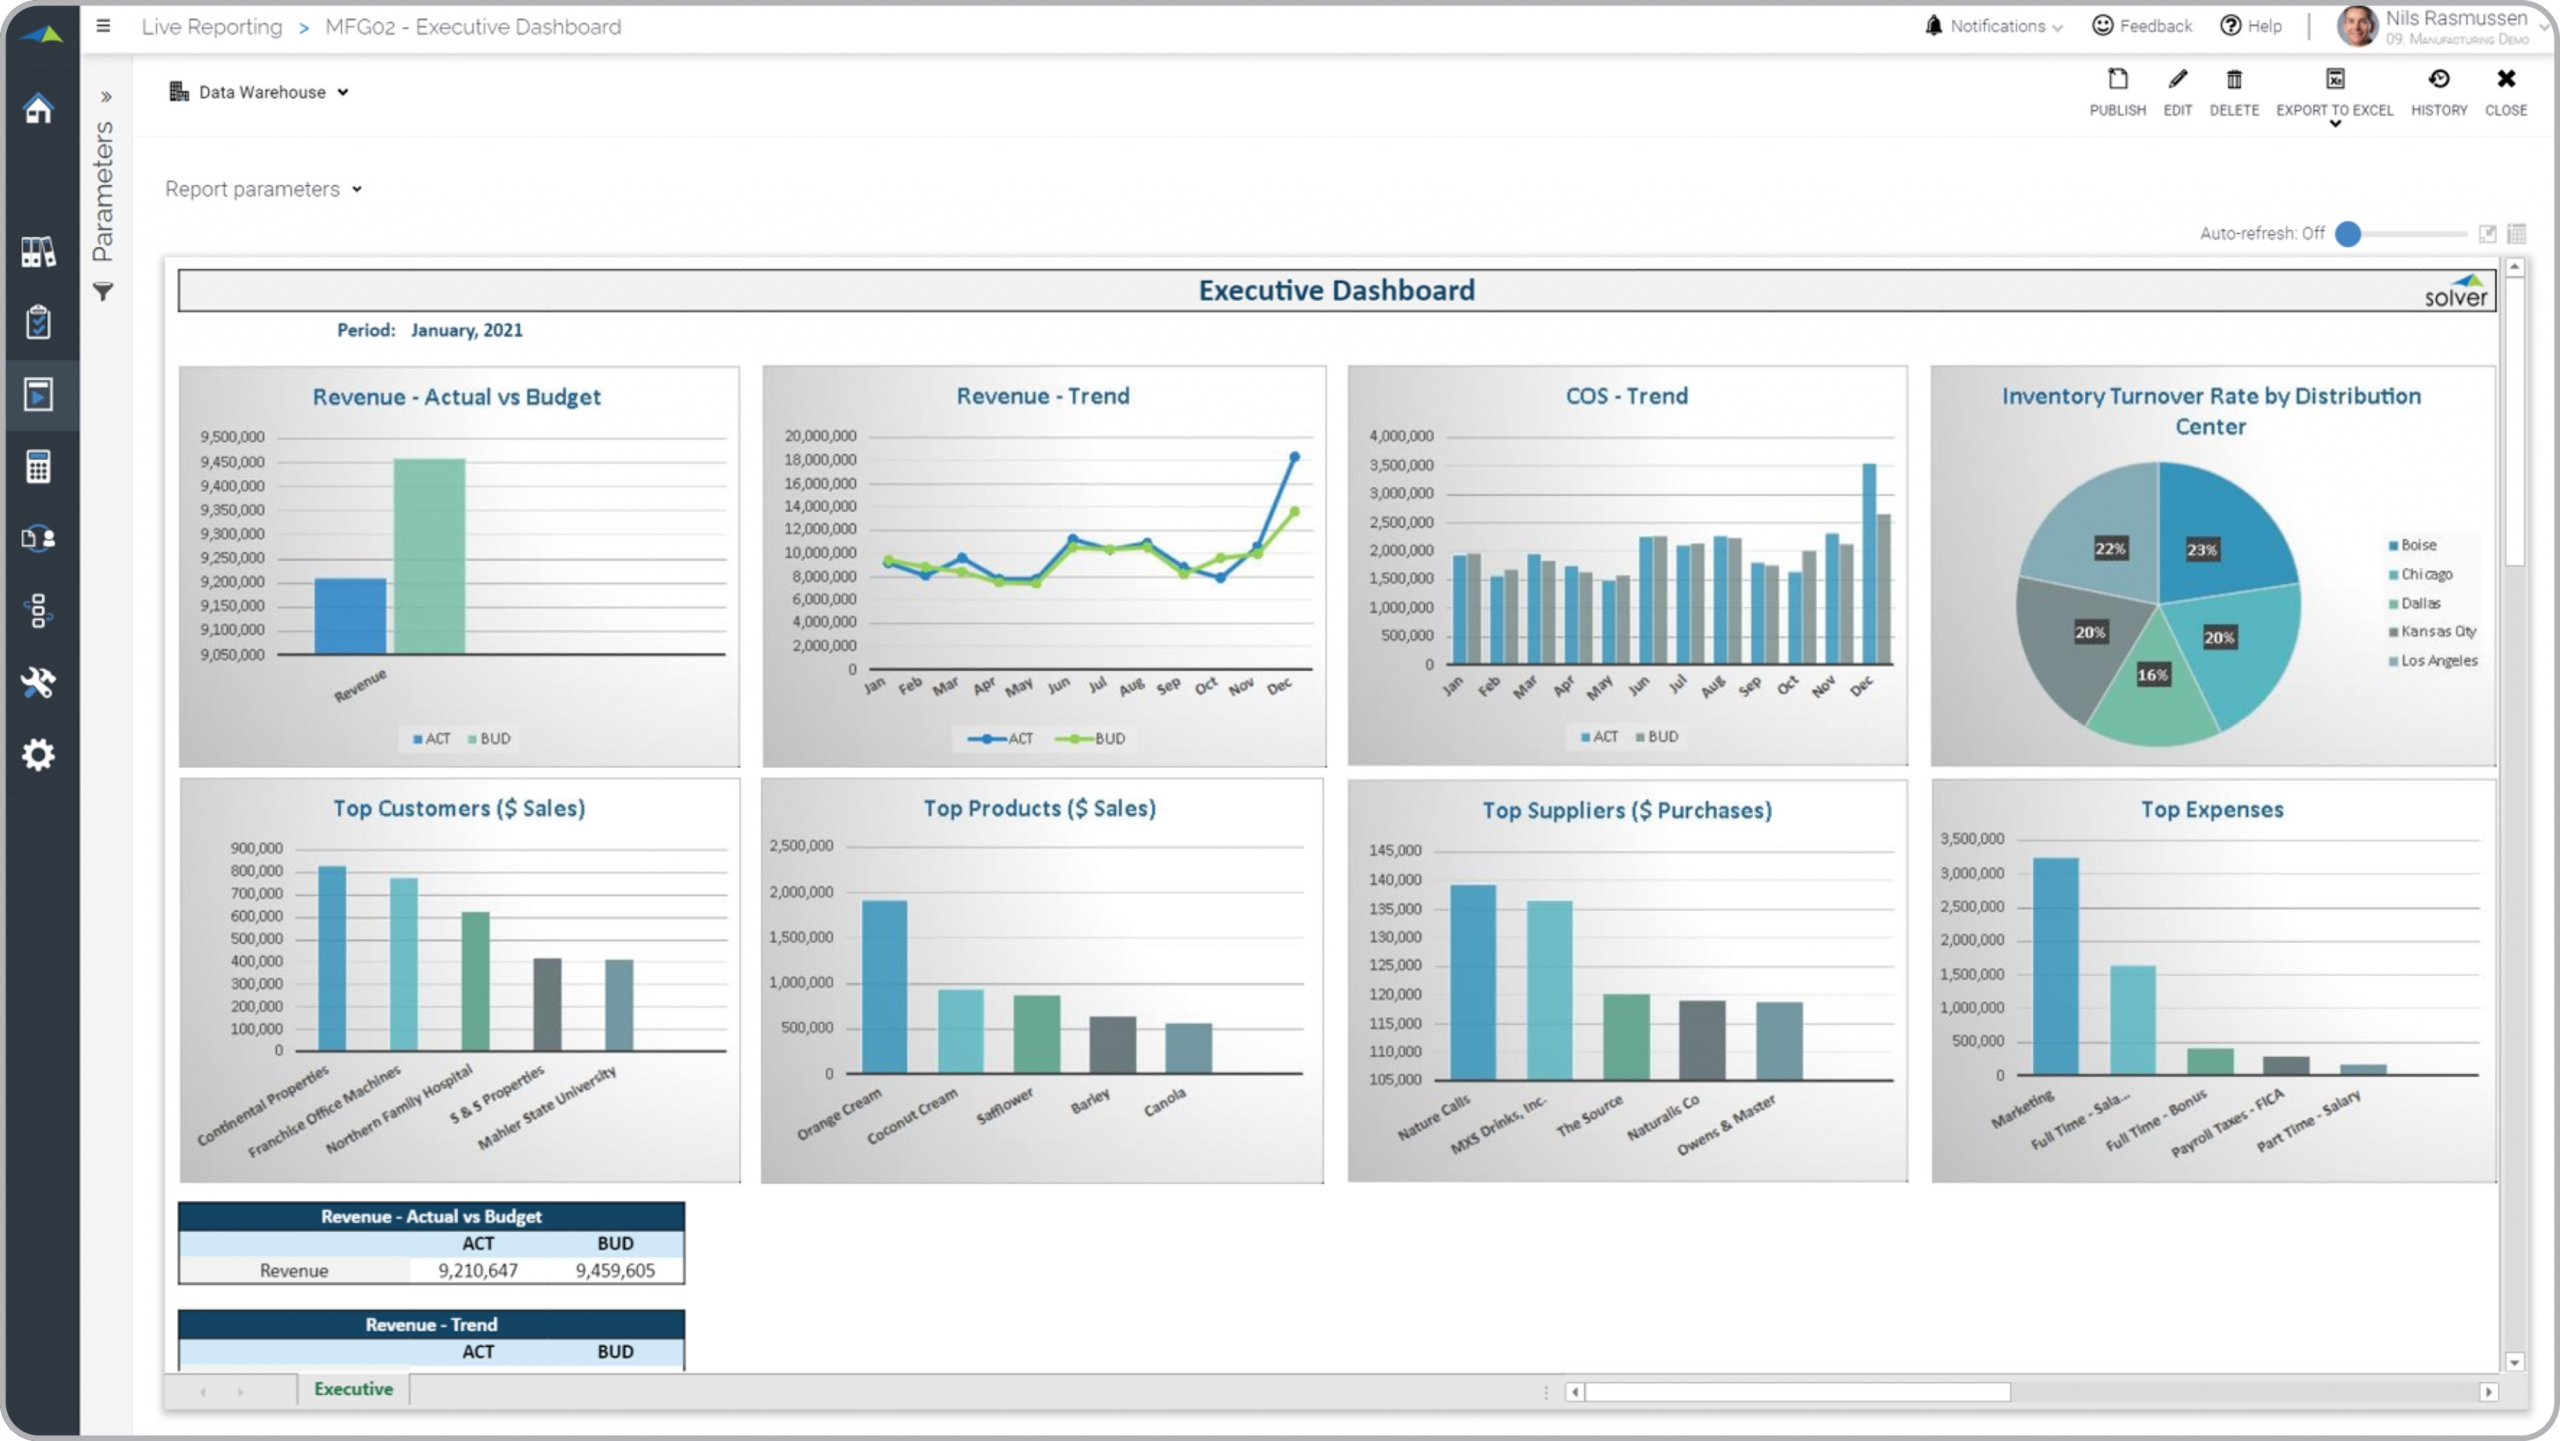 Example of an Executive Dashboard for a Manufacturing Business